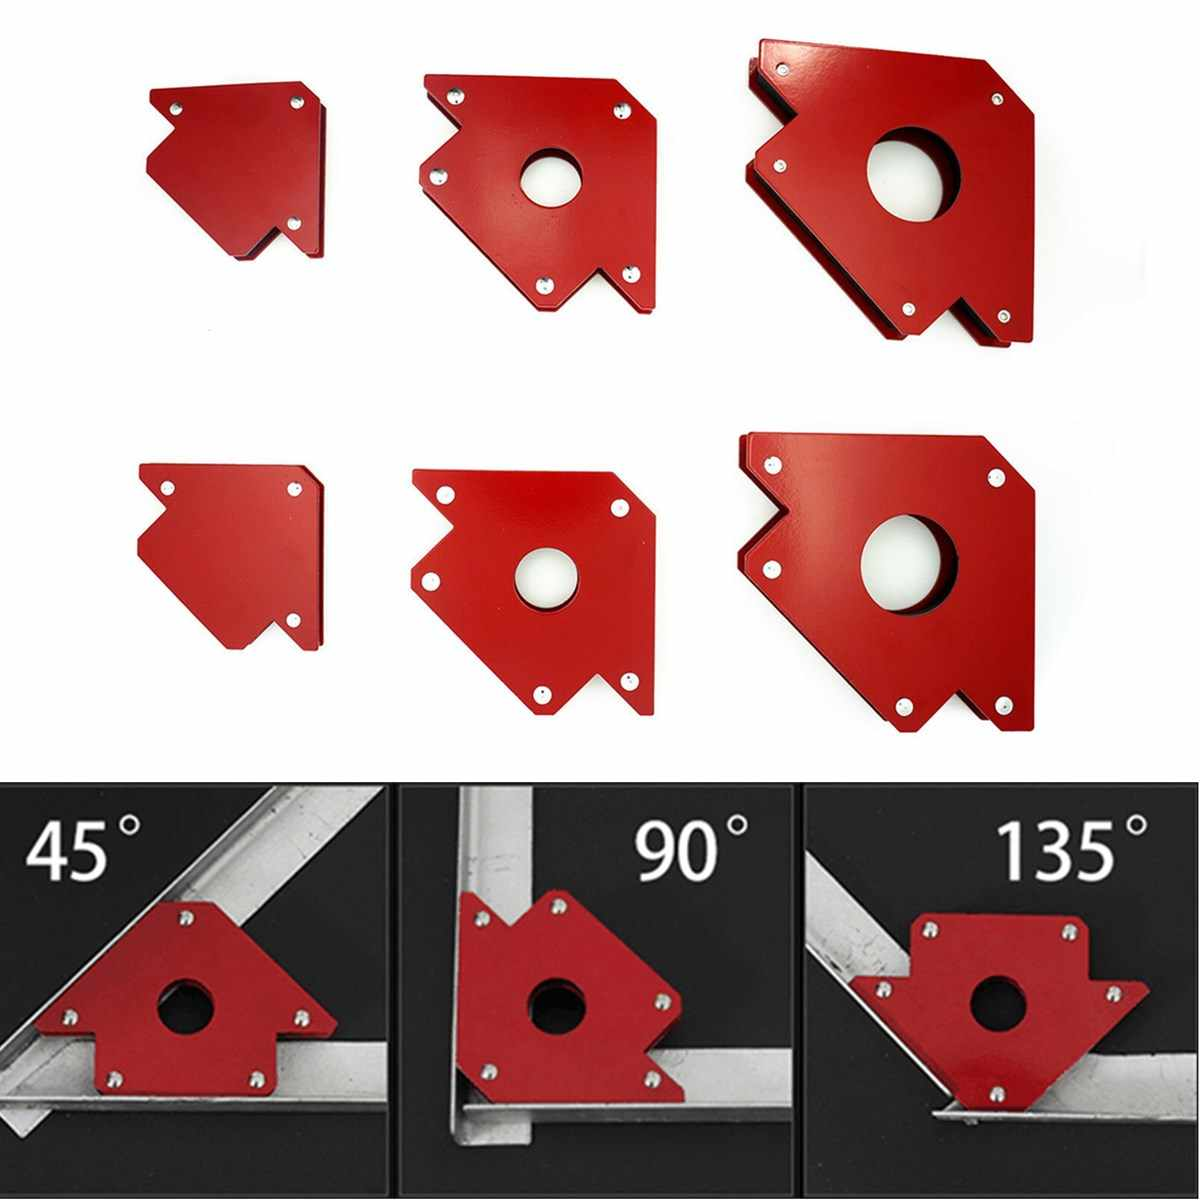 Strong Arrow Welding Magnets 4Pcs Mini Triangle Welding Positioner 9Lb Magnetic Fixed Angle Soldering Locator for Metal Working SOKLIT Arrow Welding Magnet Set